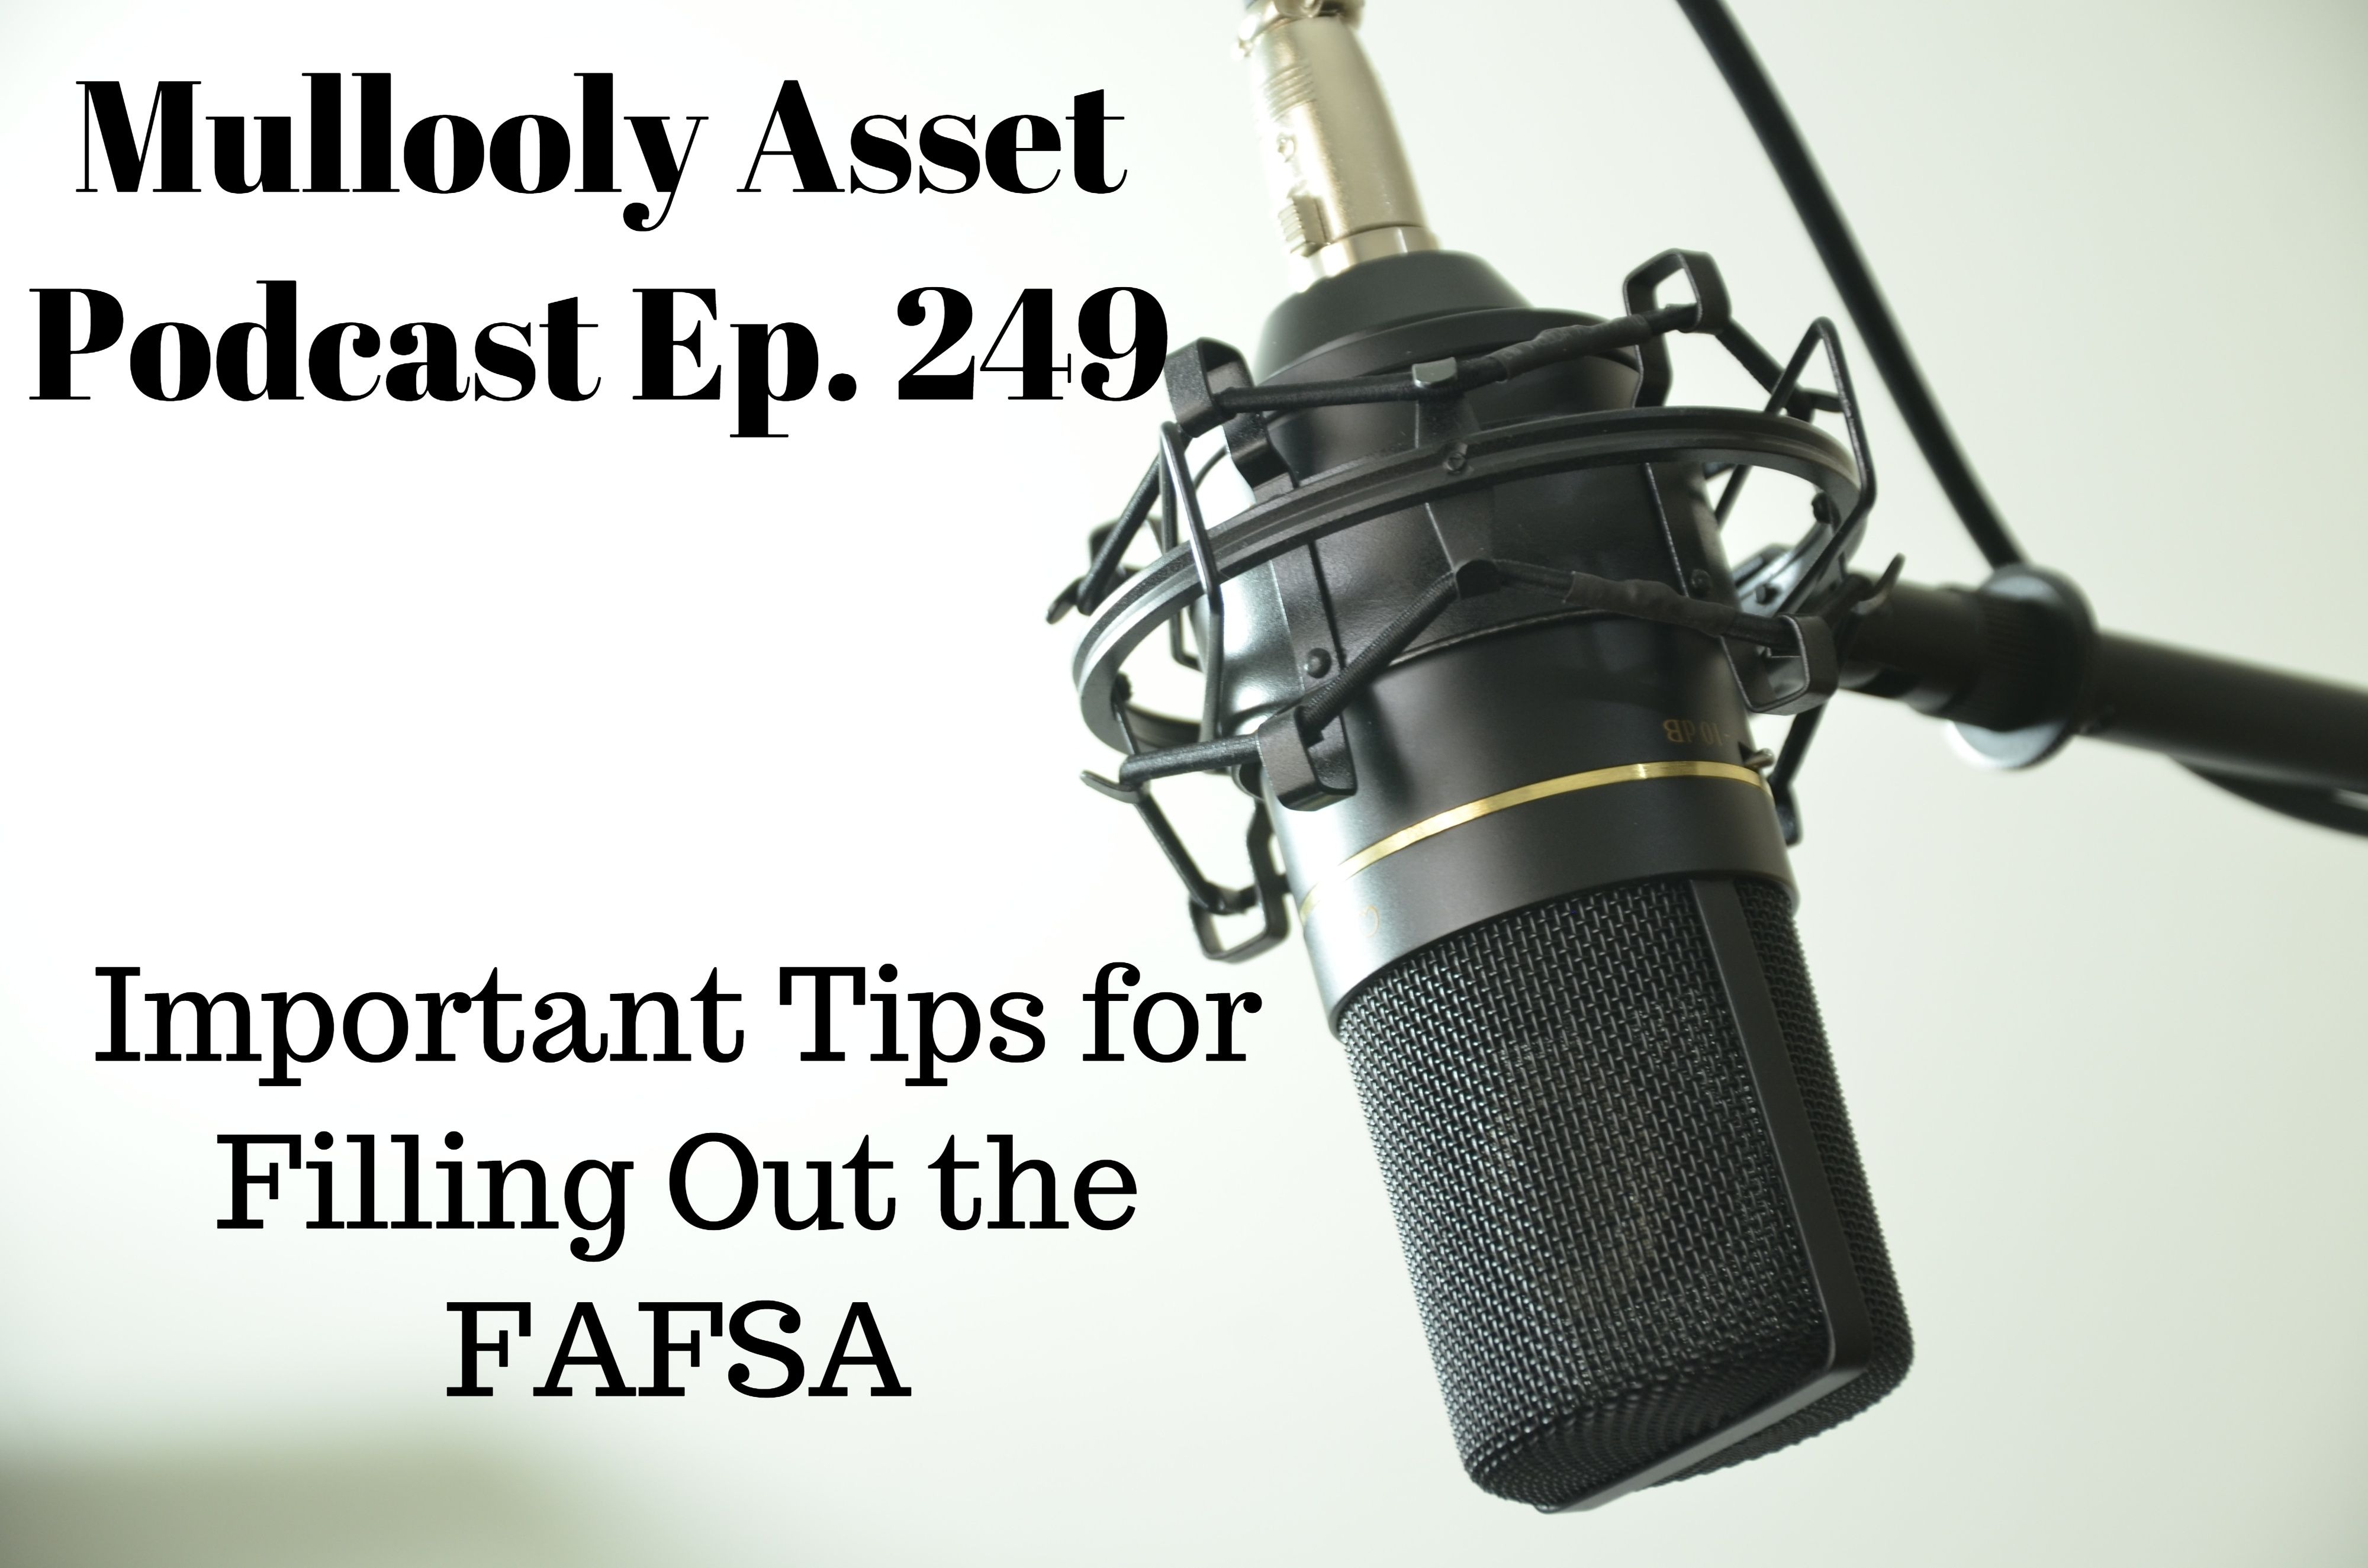 Important Tips for Filling Out the FAFSA